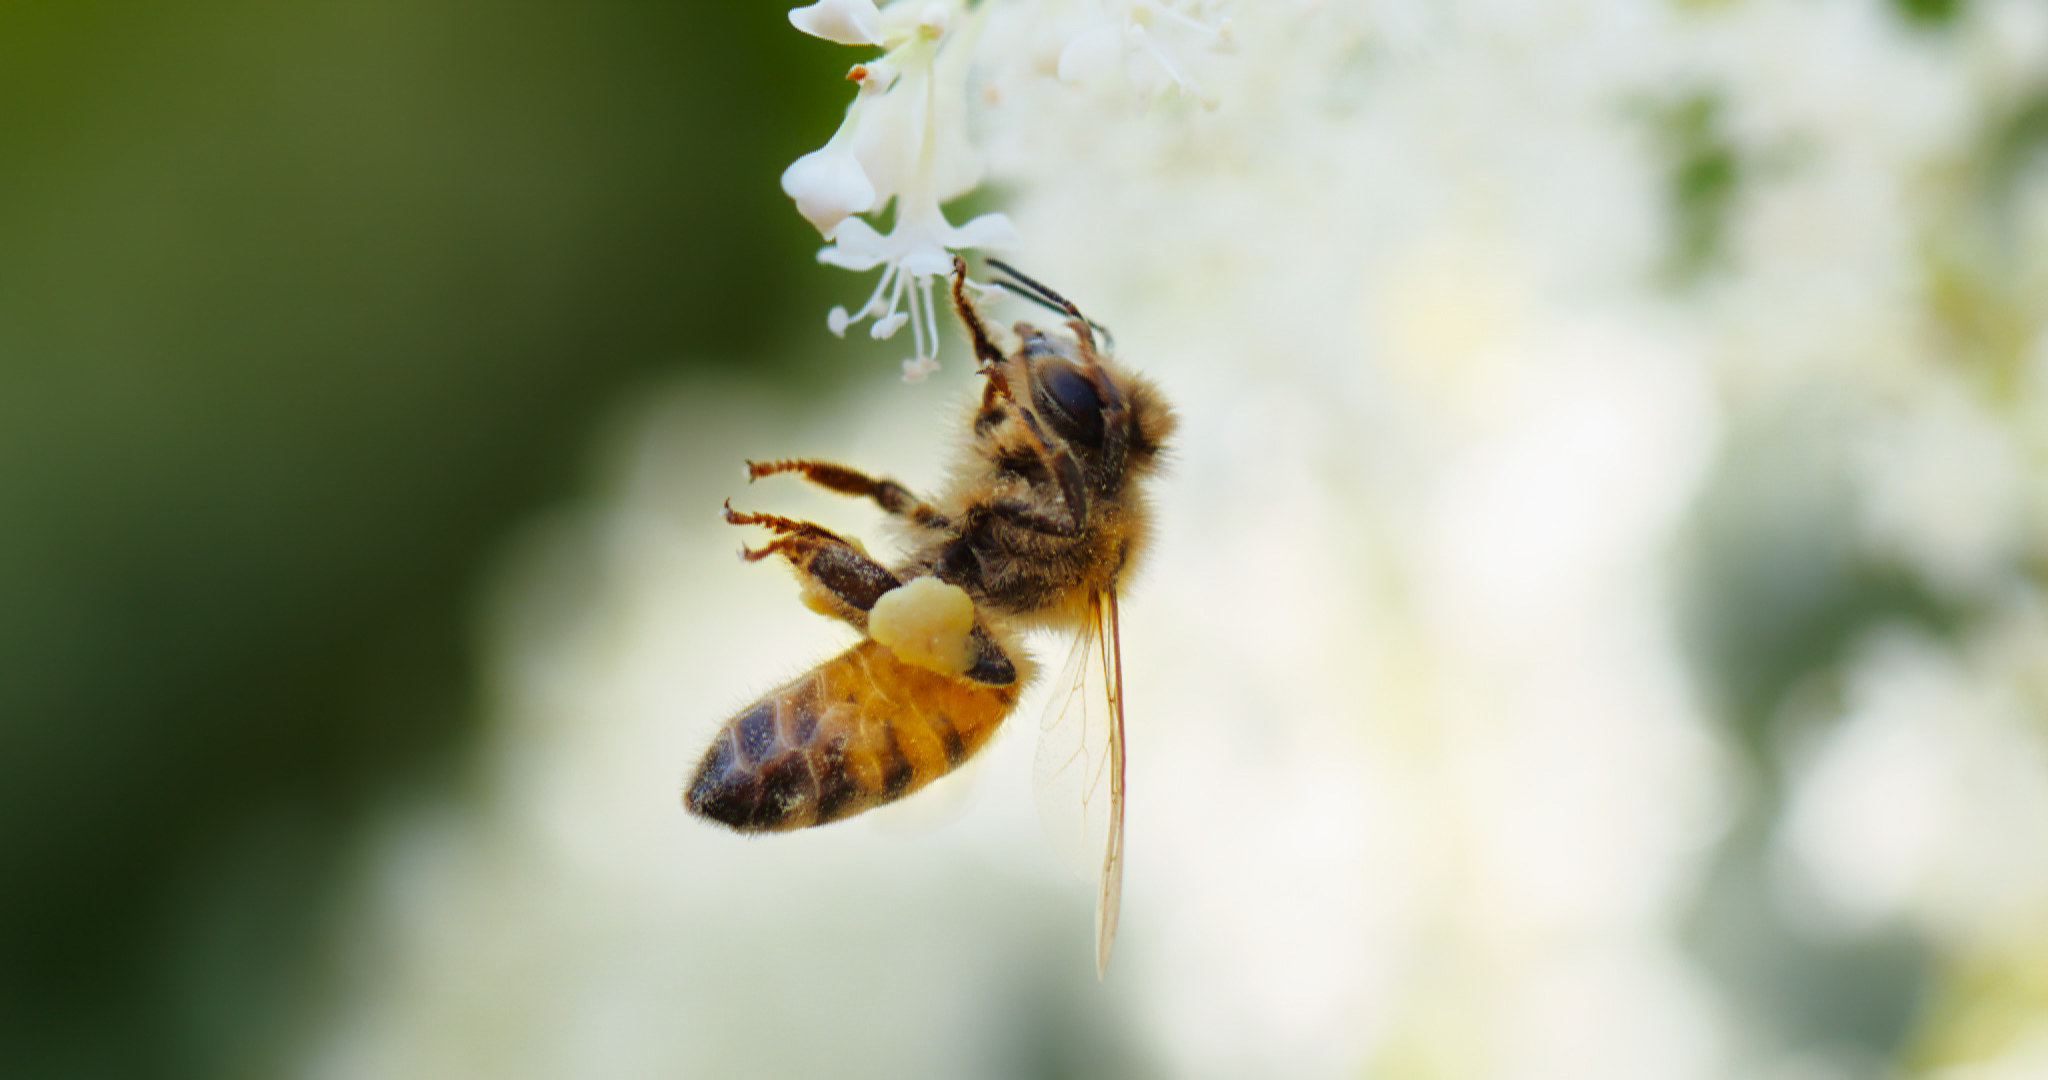 A close-up of a bee and a flower.